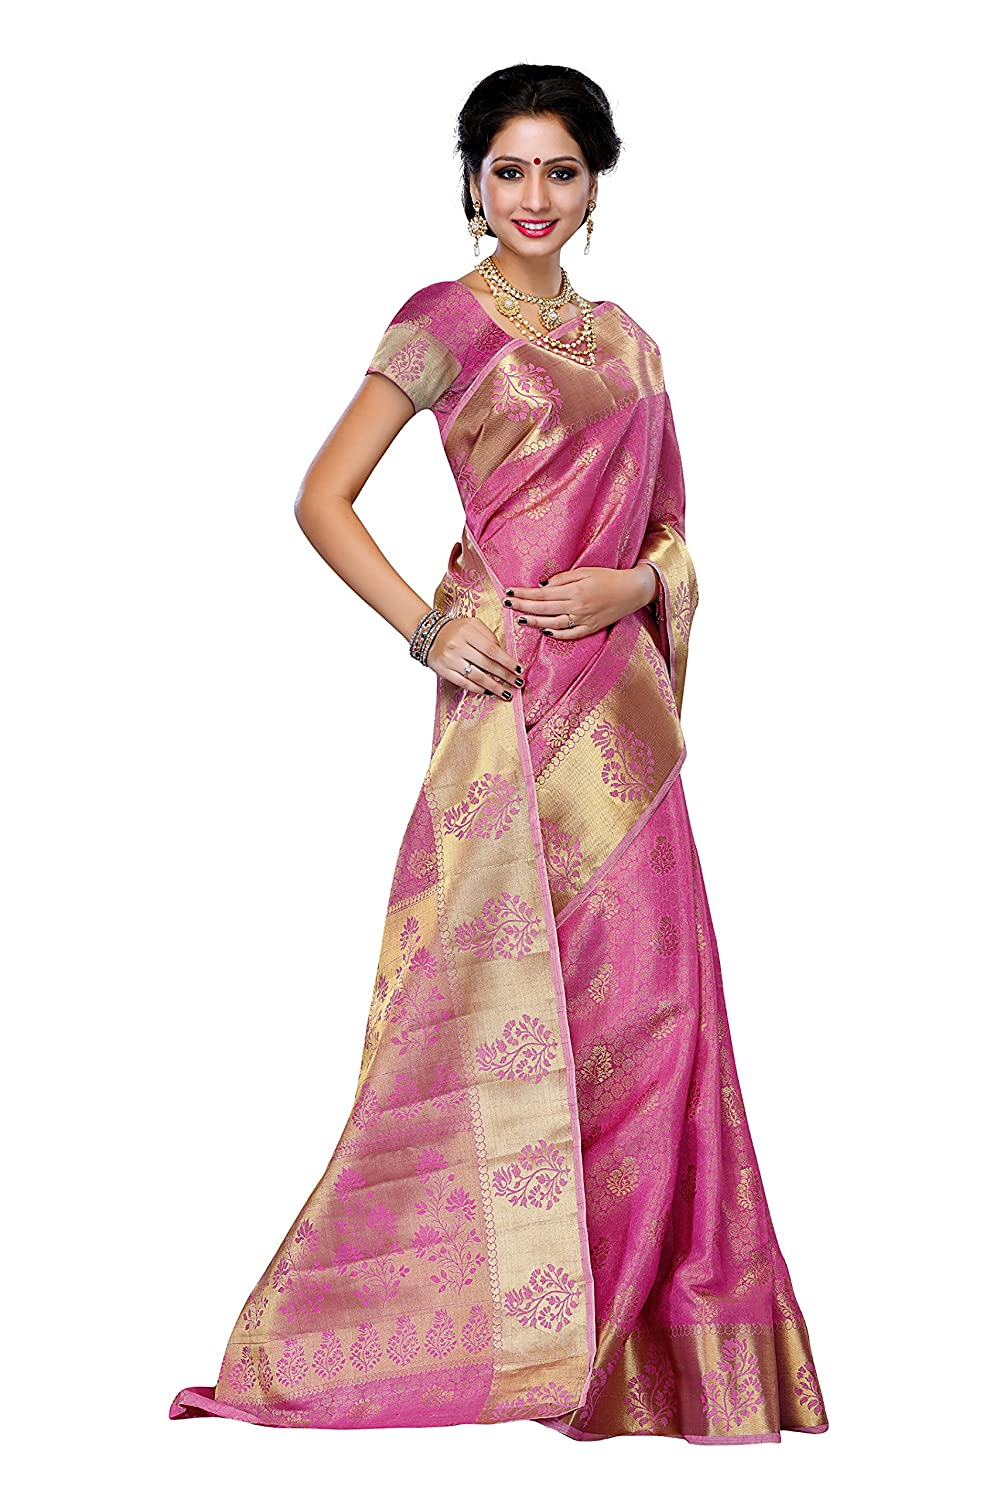 Mimosa WomenS Tussar Silk Saree With Blouse,Color:Pink(3192-178-PINK): Amazon.co.uk: Clothing